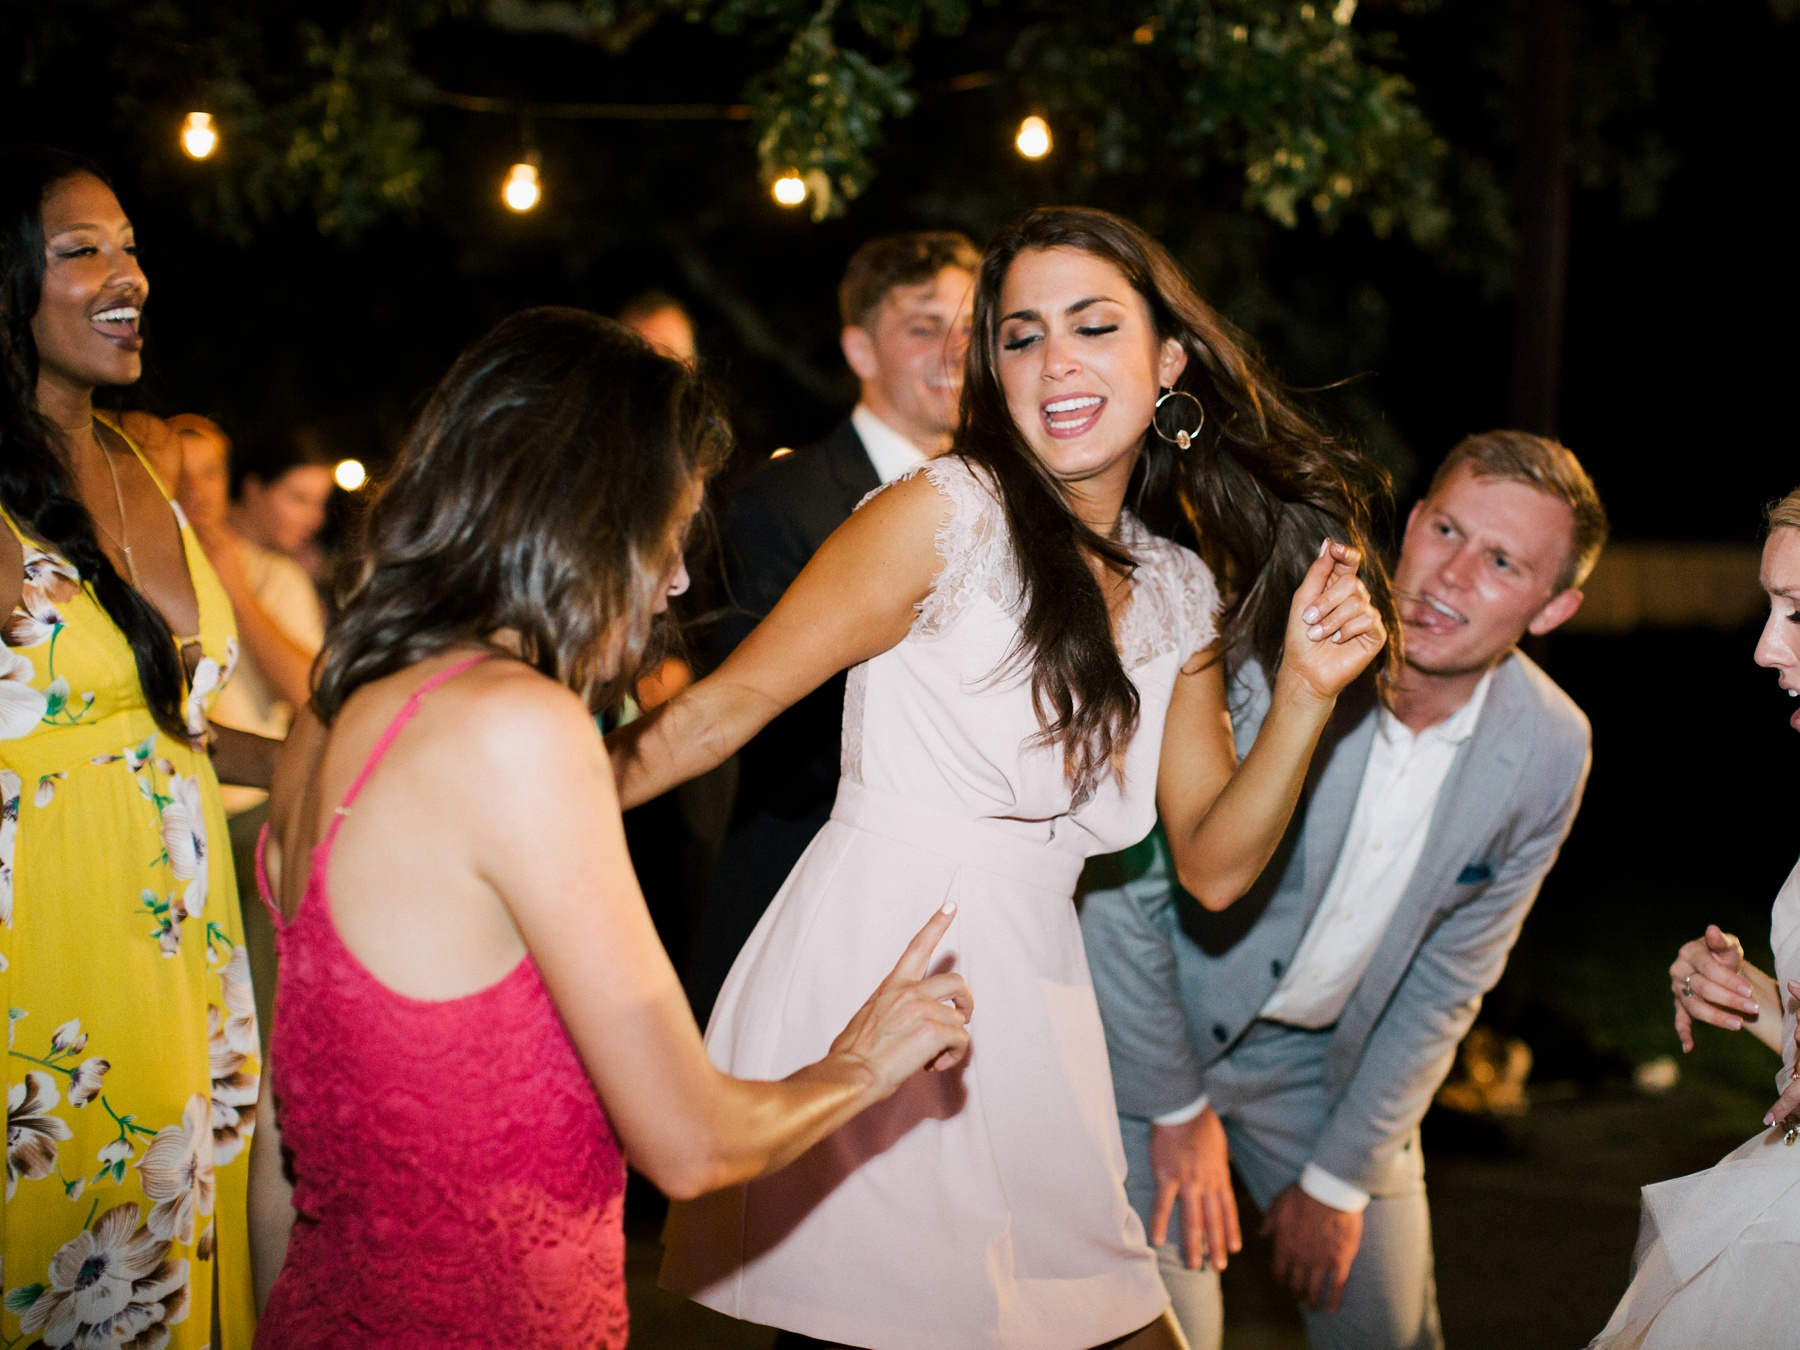 CMT Music City Jessica Mack and Andreas Plackis Wedding_1555.jpg